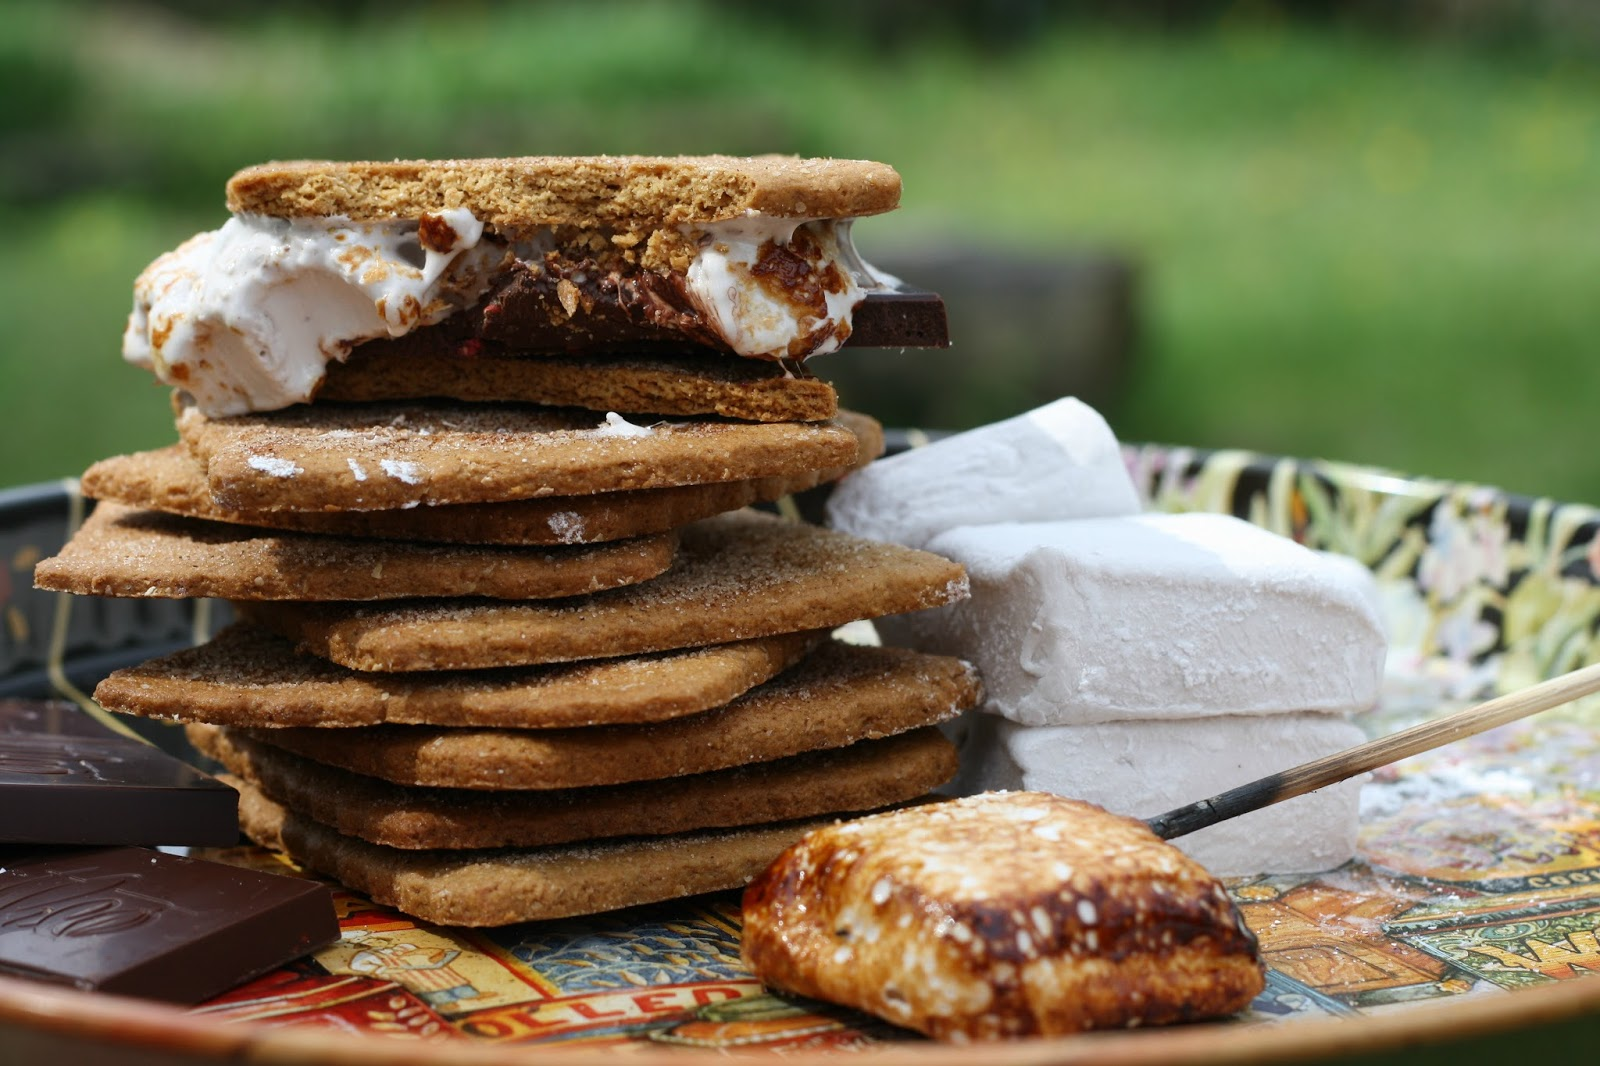 Raspberry-laced S'mores, using homemade graham crackers, homemade ...